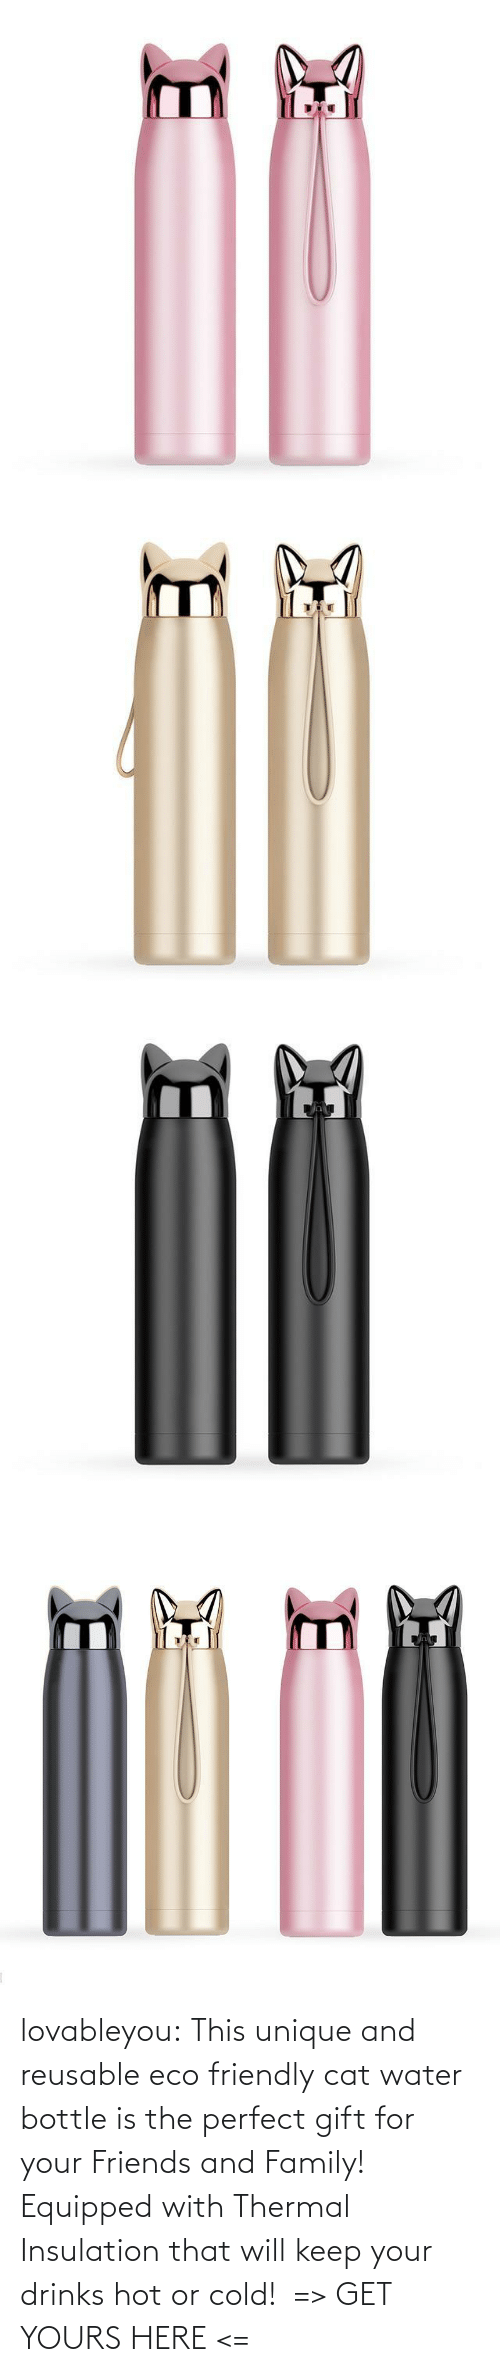 Drinks: lovableyou: This unique and reusable eco friendly cat water bottle is the perfect gift for your Friends and Family! Equipped with Thermal Insulation that will keep your drinks hot or cold!  => GET YOURS HERE <=